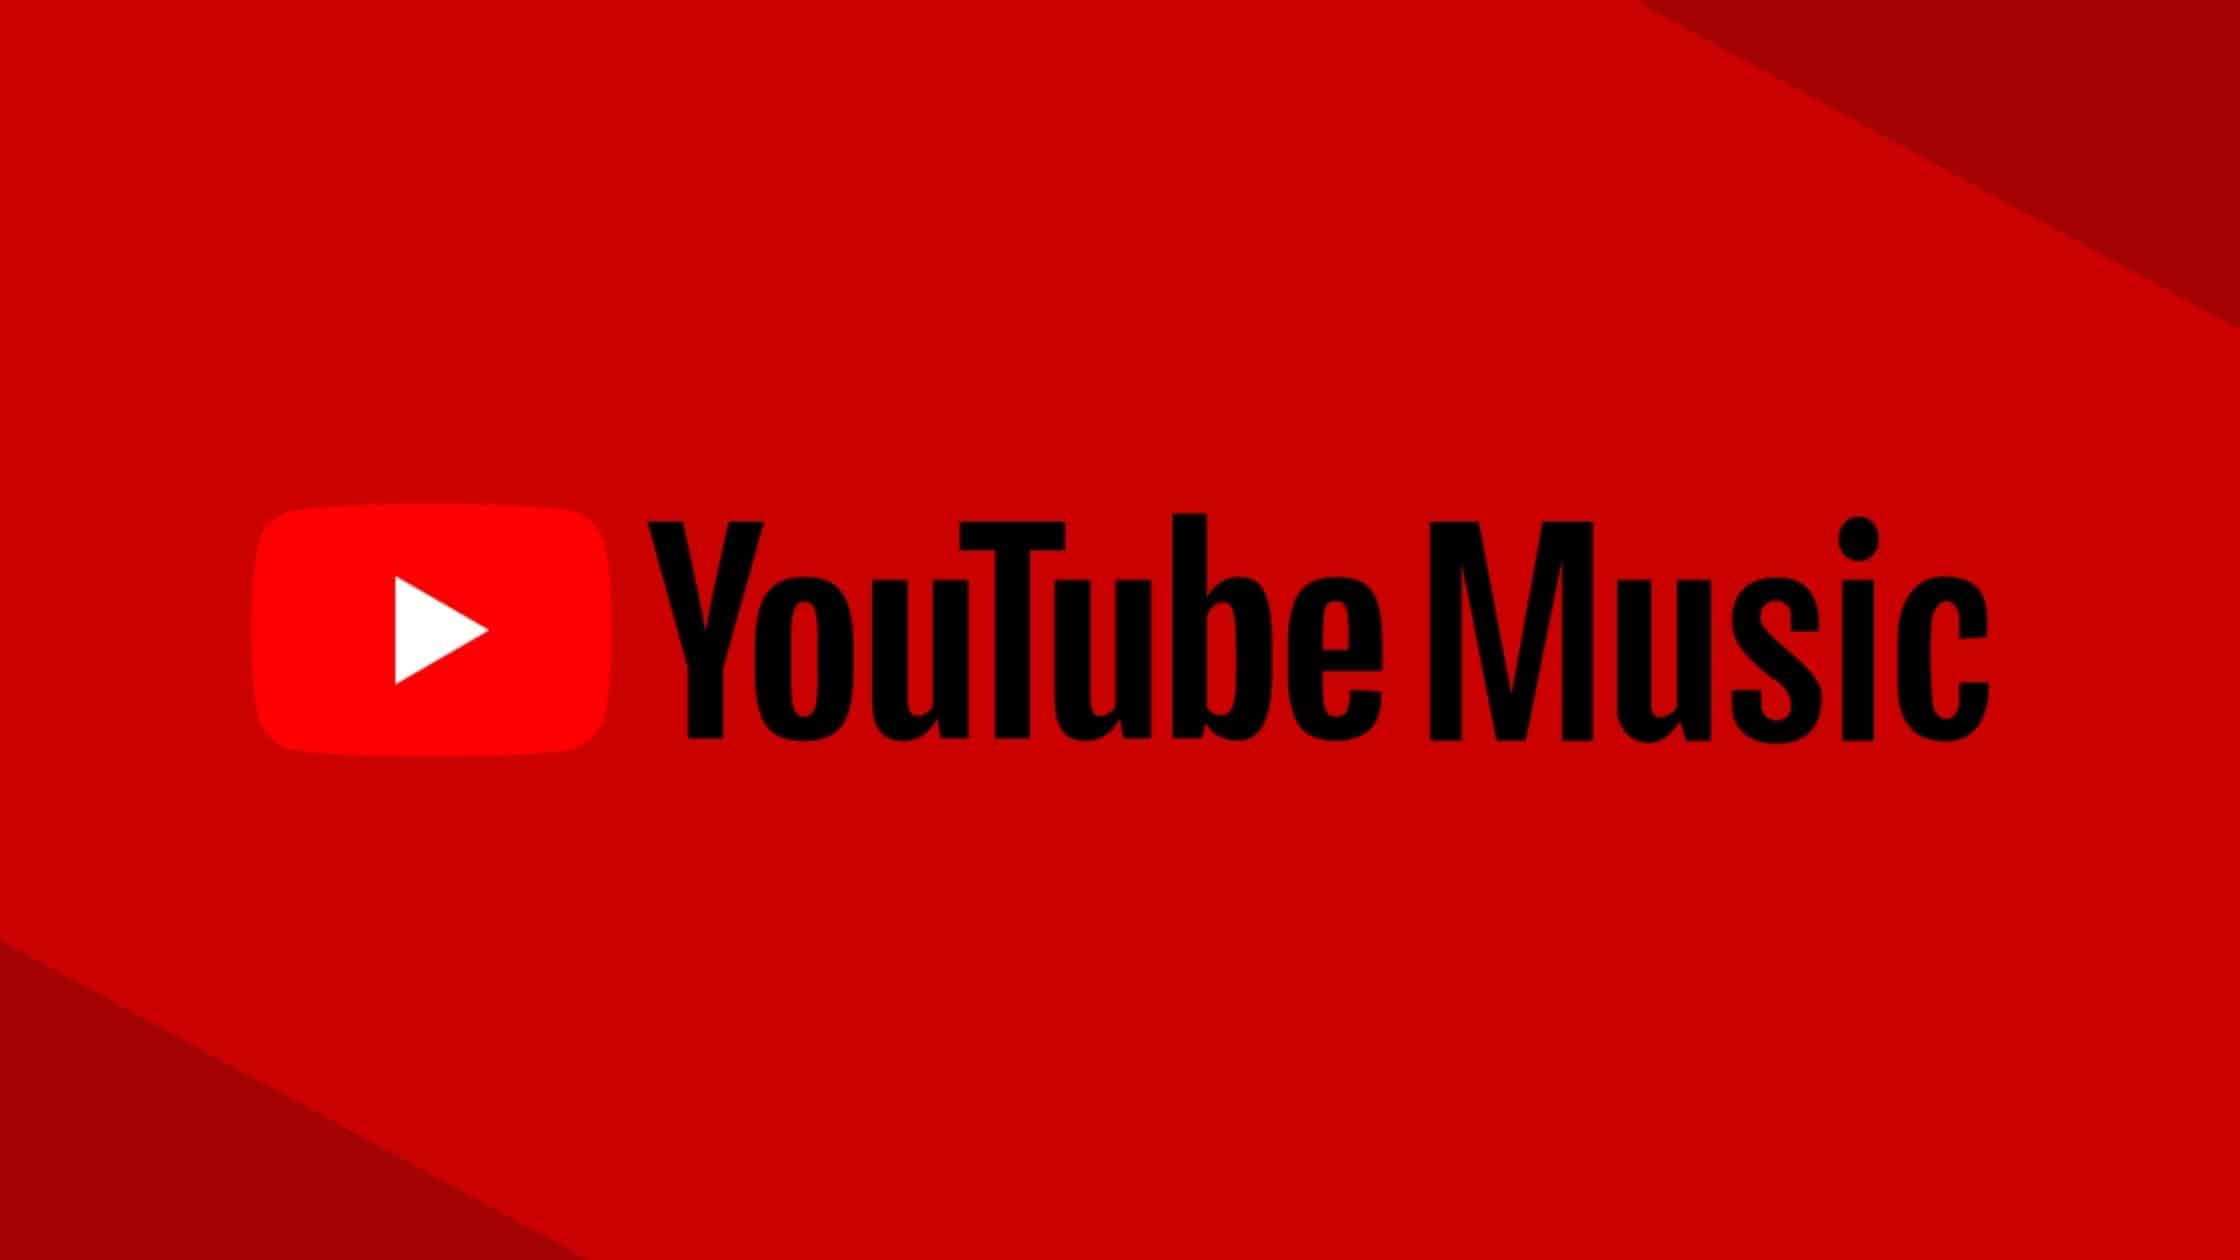 Google Play Music Close: How to Transfer Music to YouTube Music